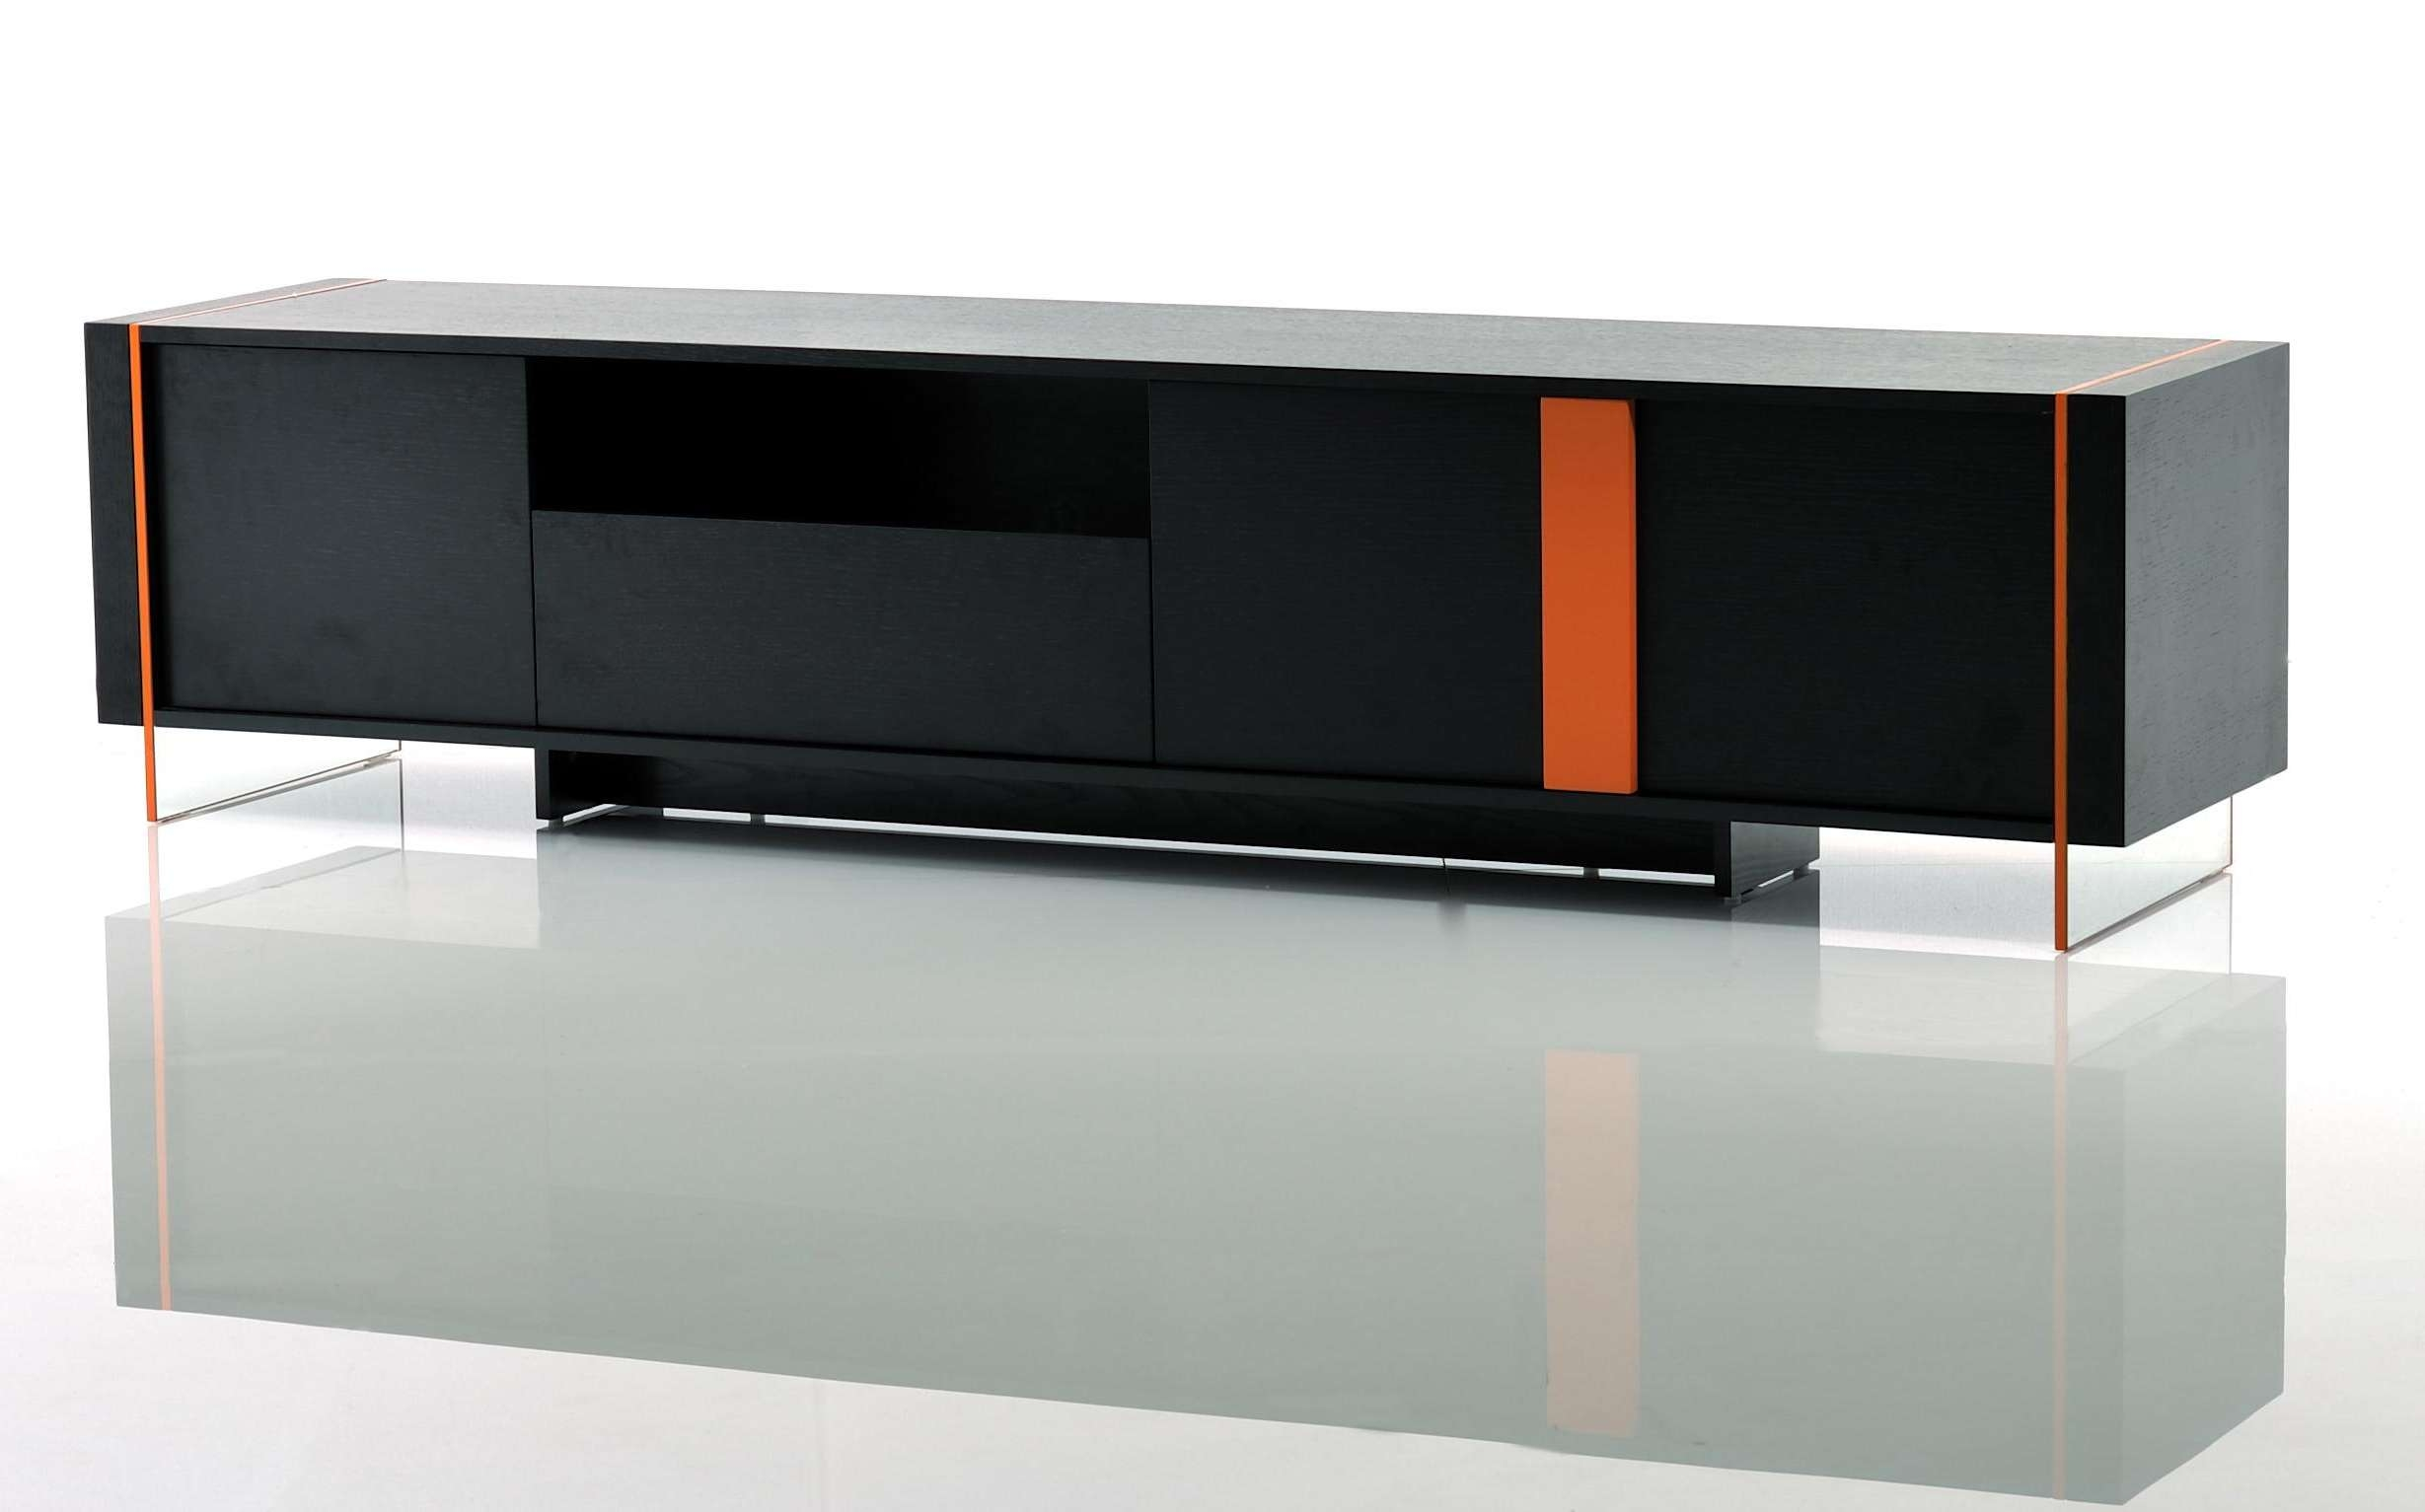 Contemporary Black Oak And Orange Floating Tv Stand Austin Texas Vvis With Regard To Orange Tv Stands (View 5 of 15)